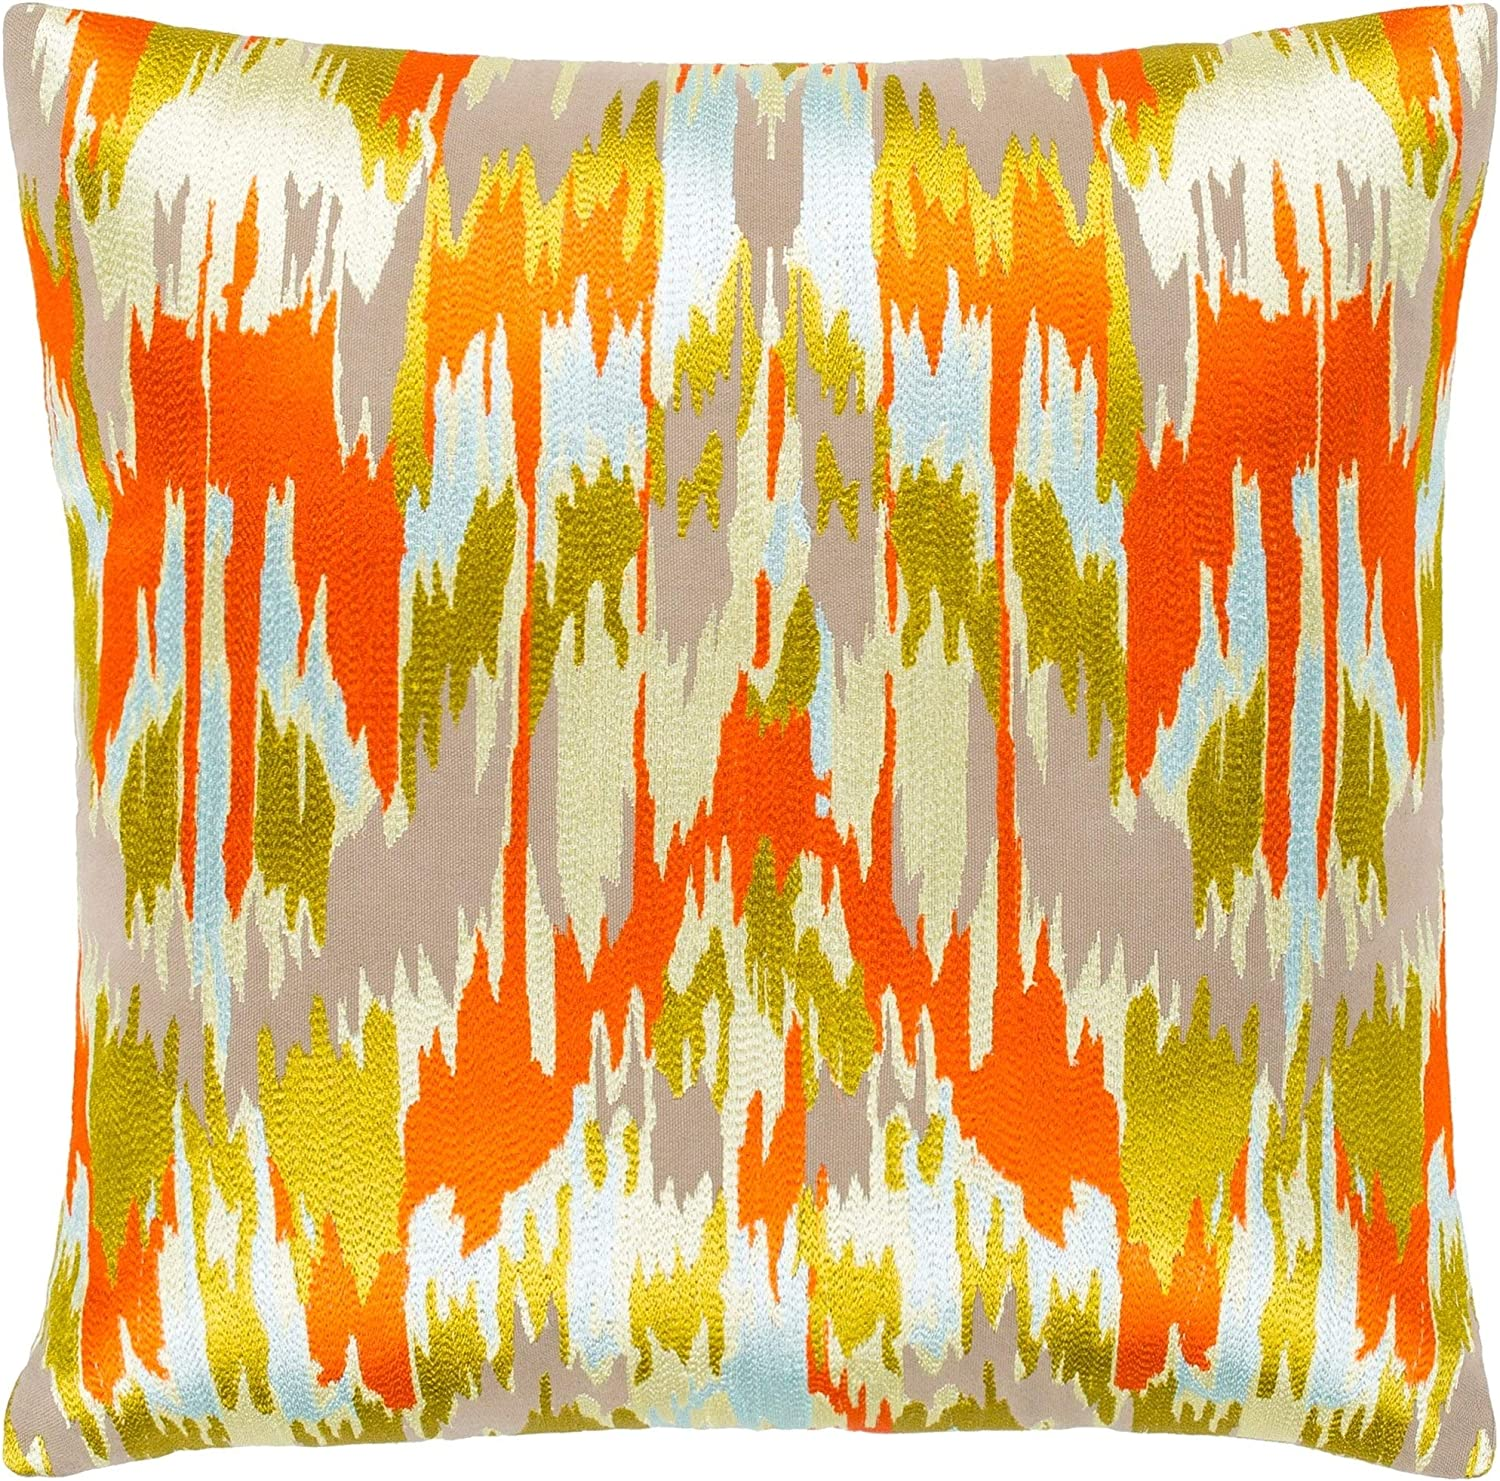 MISC Orange Lime Embroidered Ikat Down Throw Feather 20